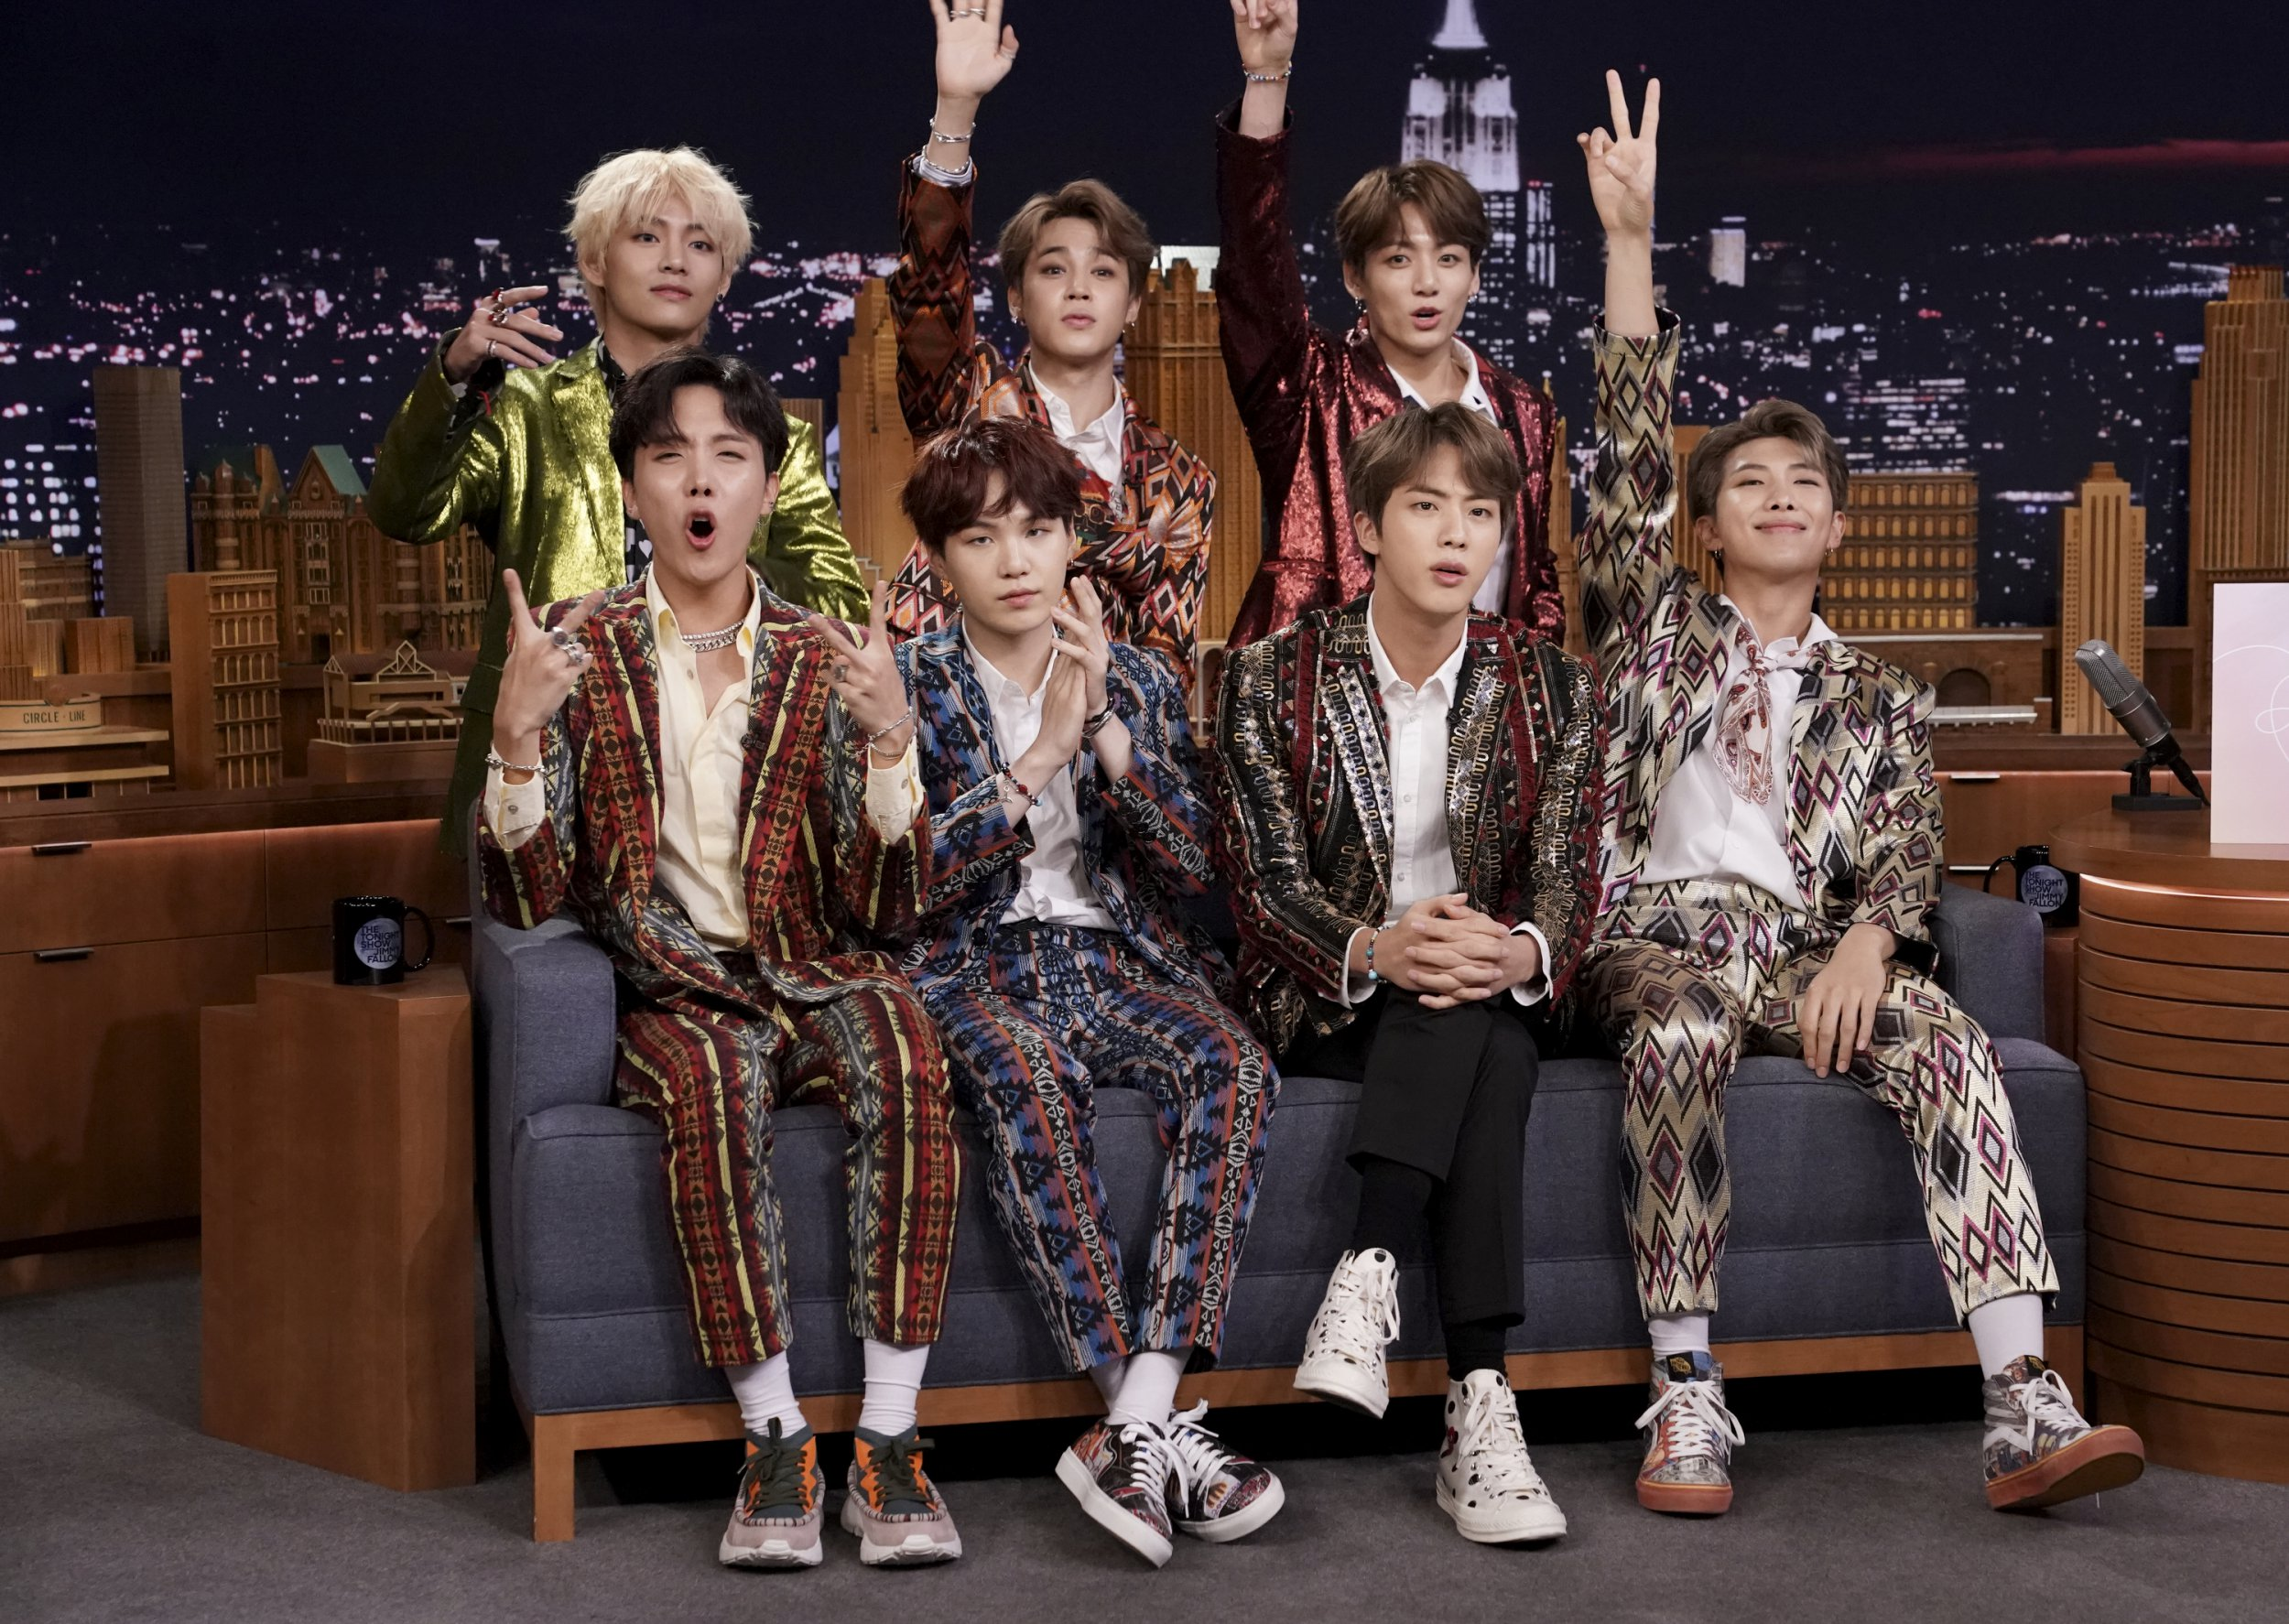 BTS release brand new English track Waste It On Me with Steve Aoki